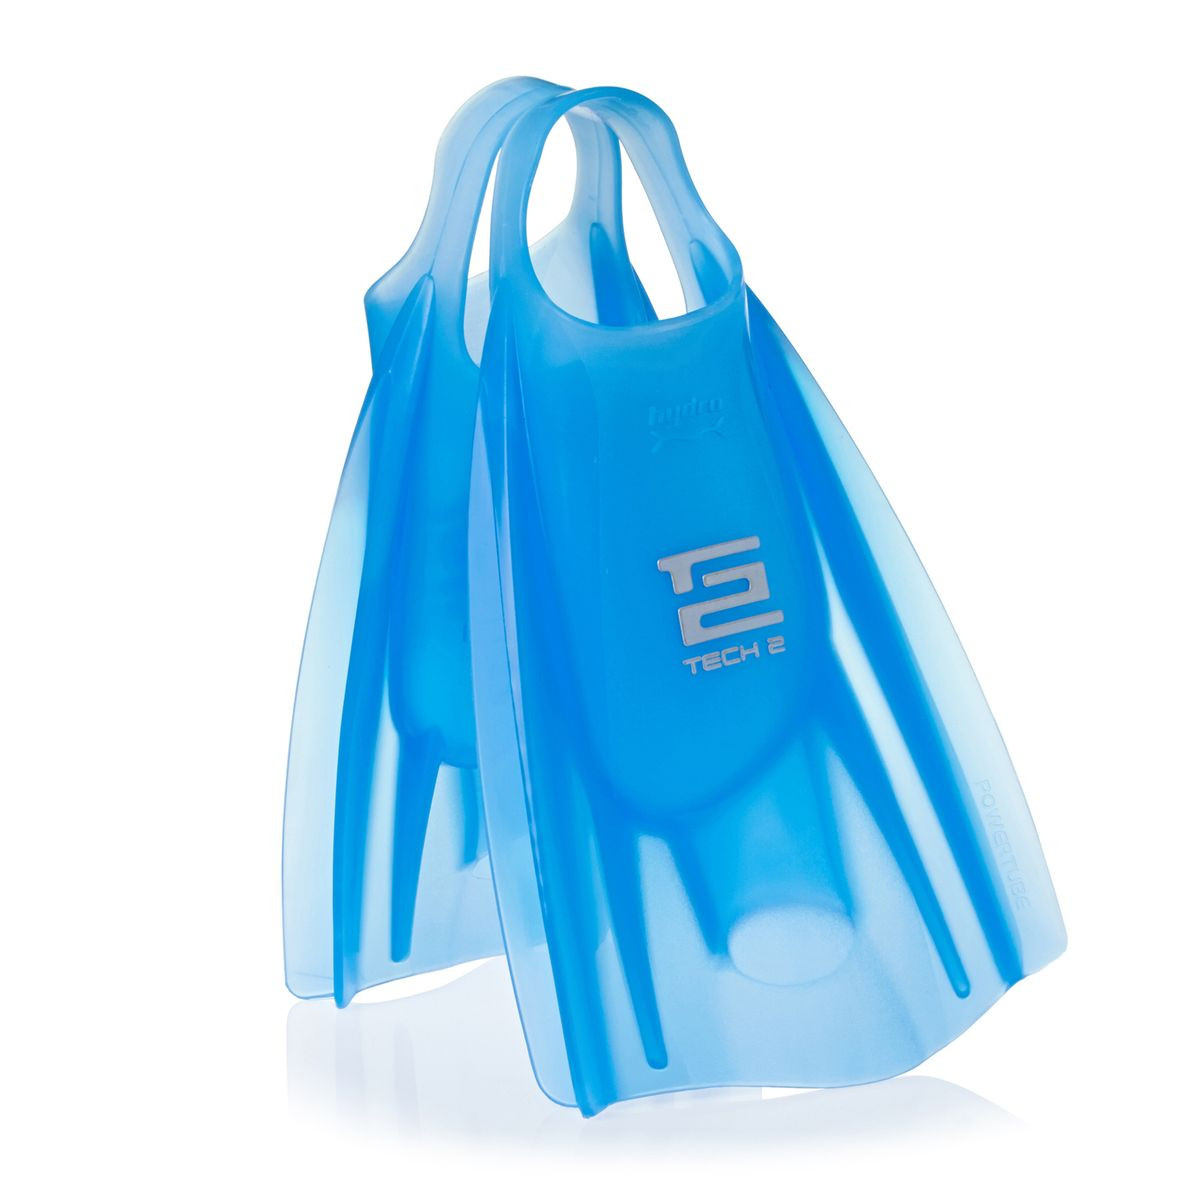 Hydro Tech 2 Bodyboard Fins Ice Blue - Large